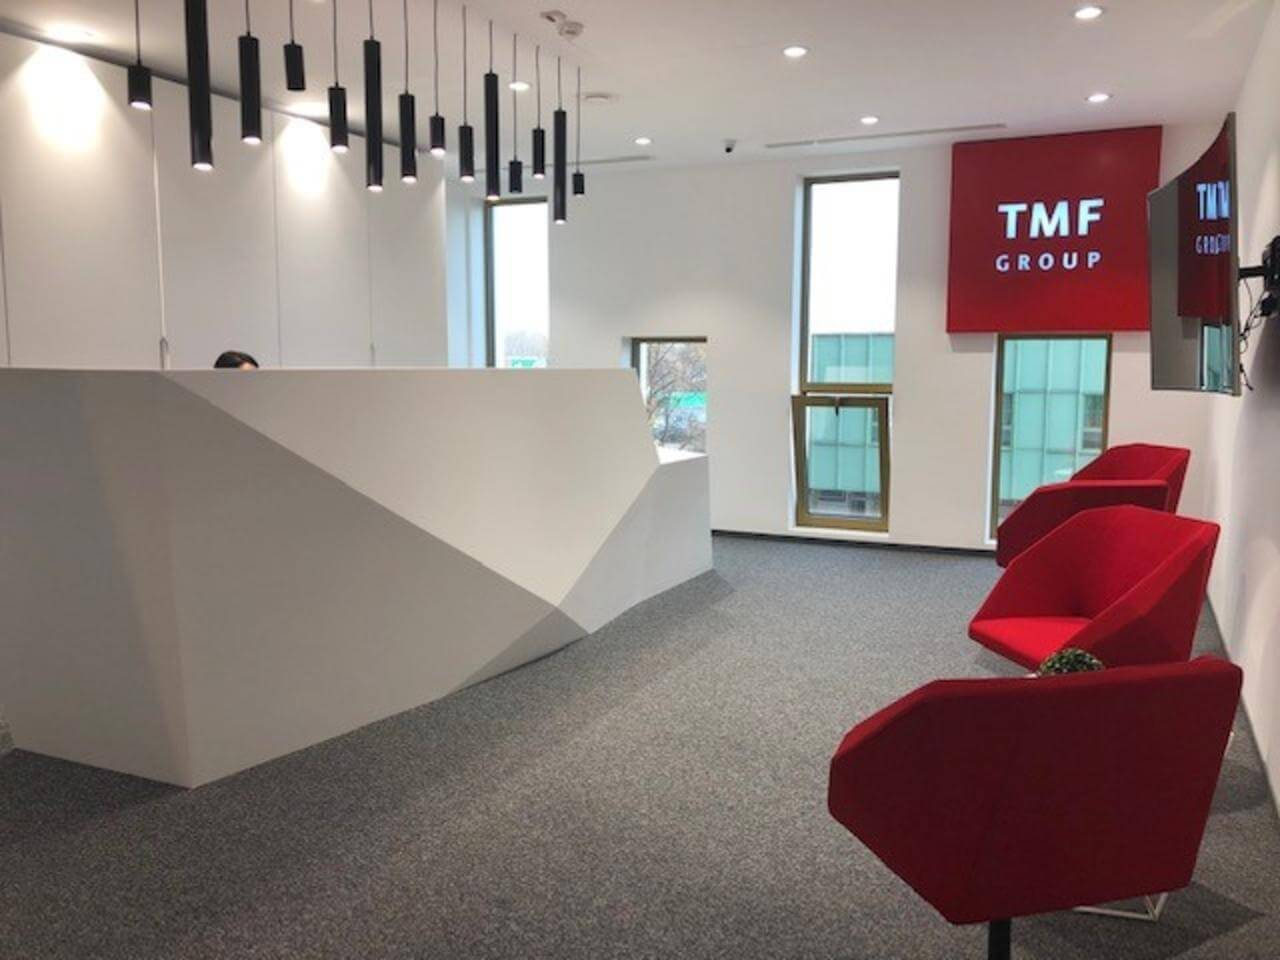 TMF Group reception